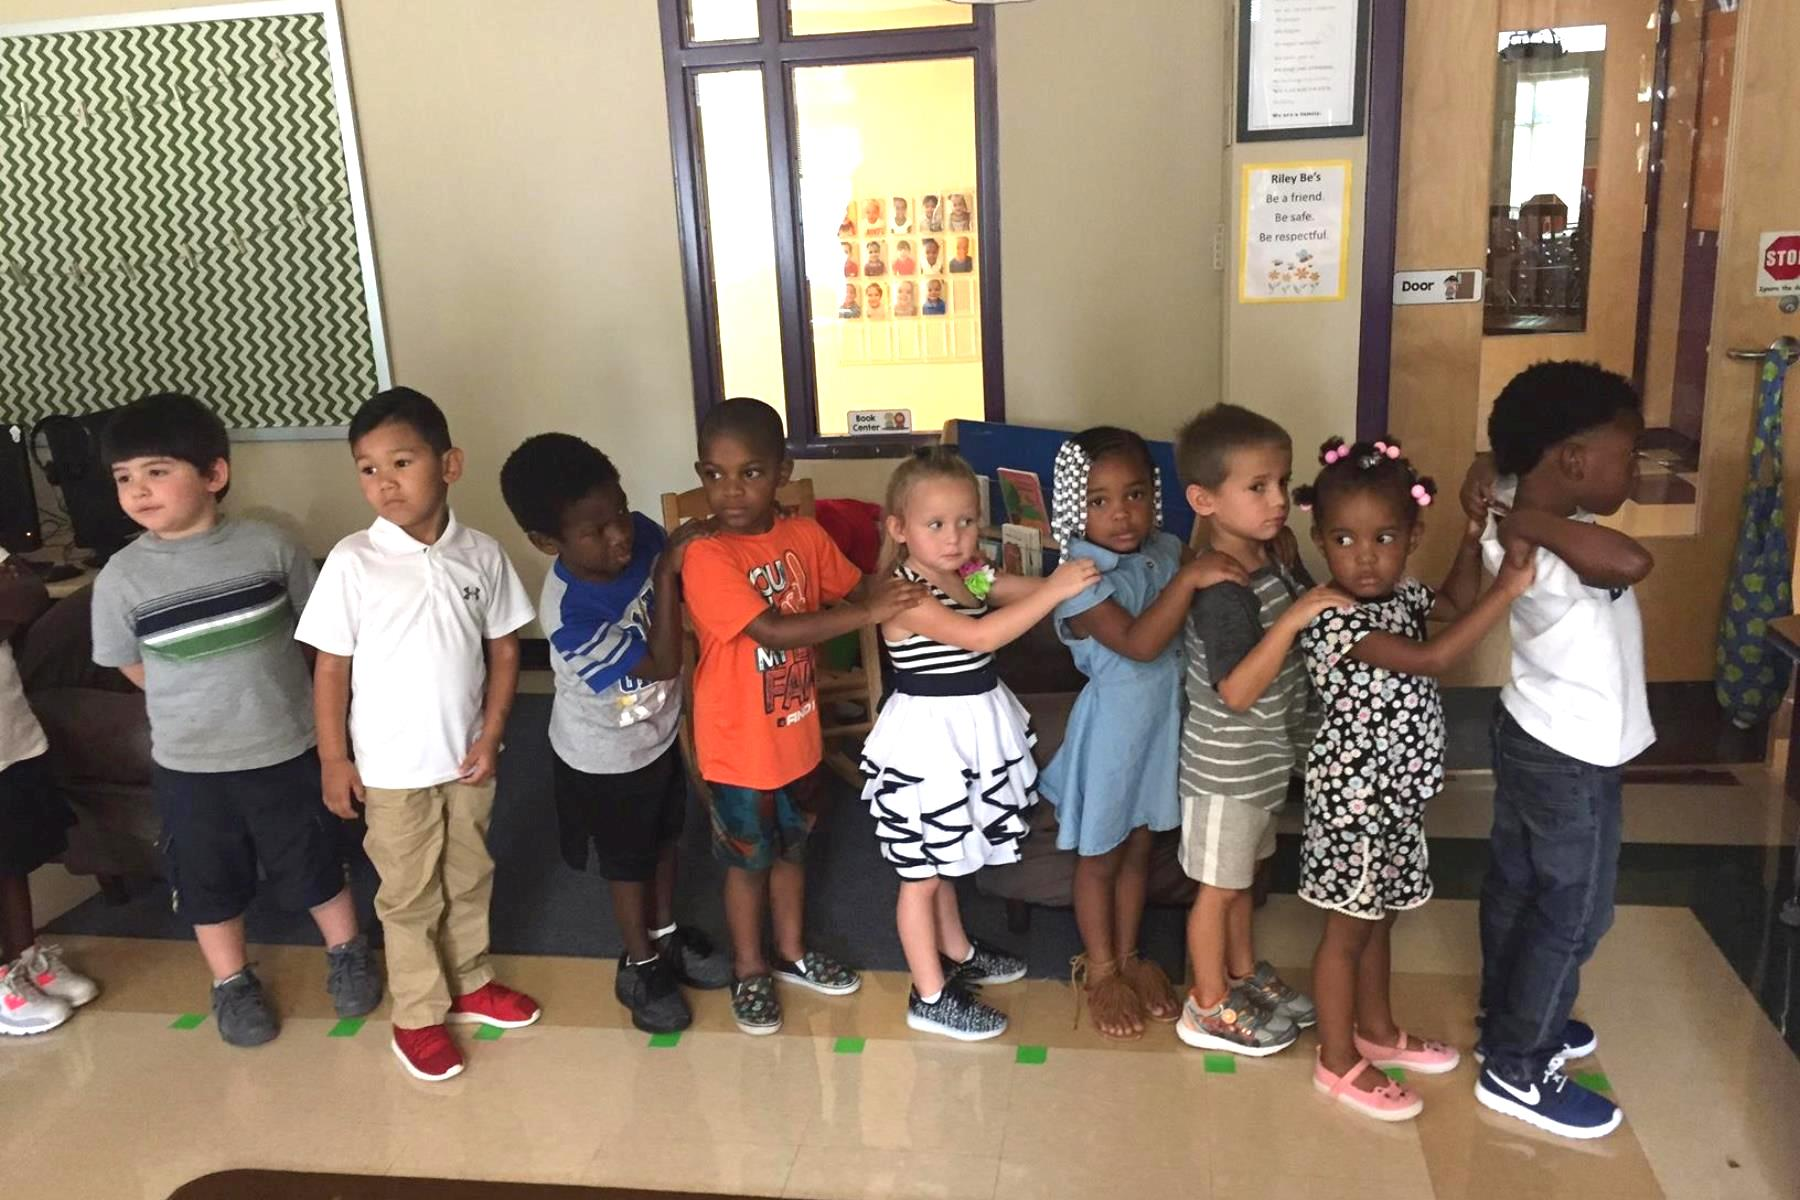 A group of pre-school children standing in a line